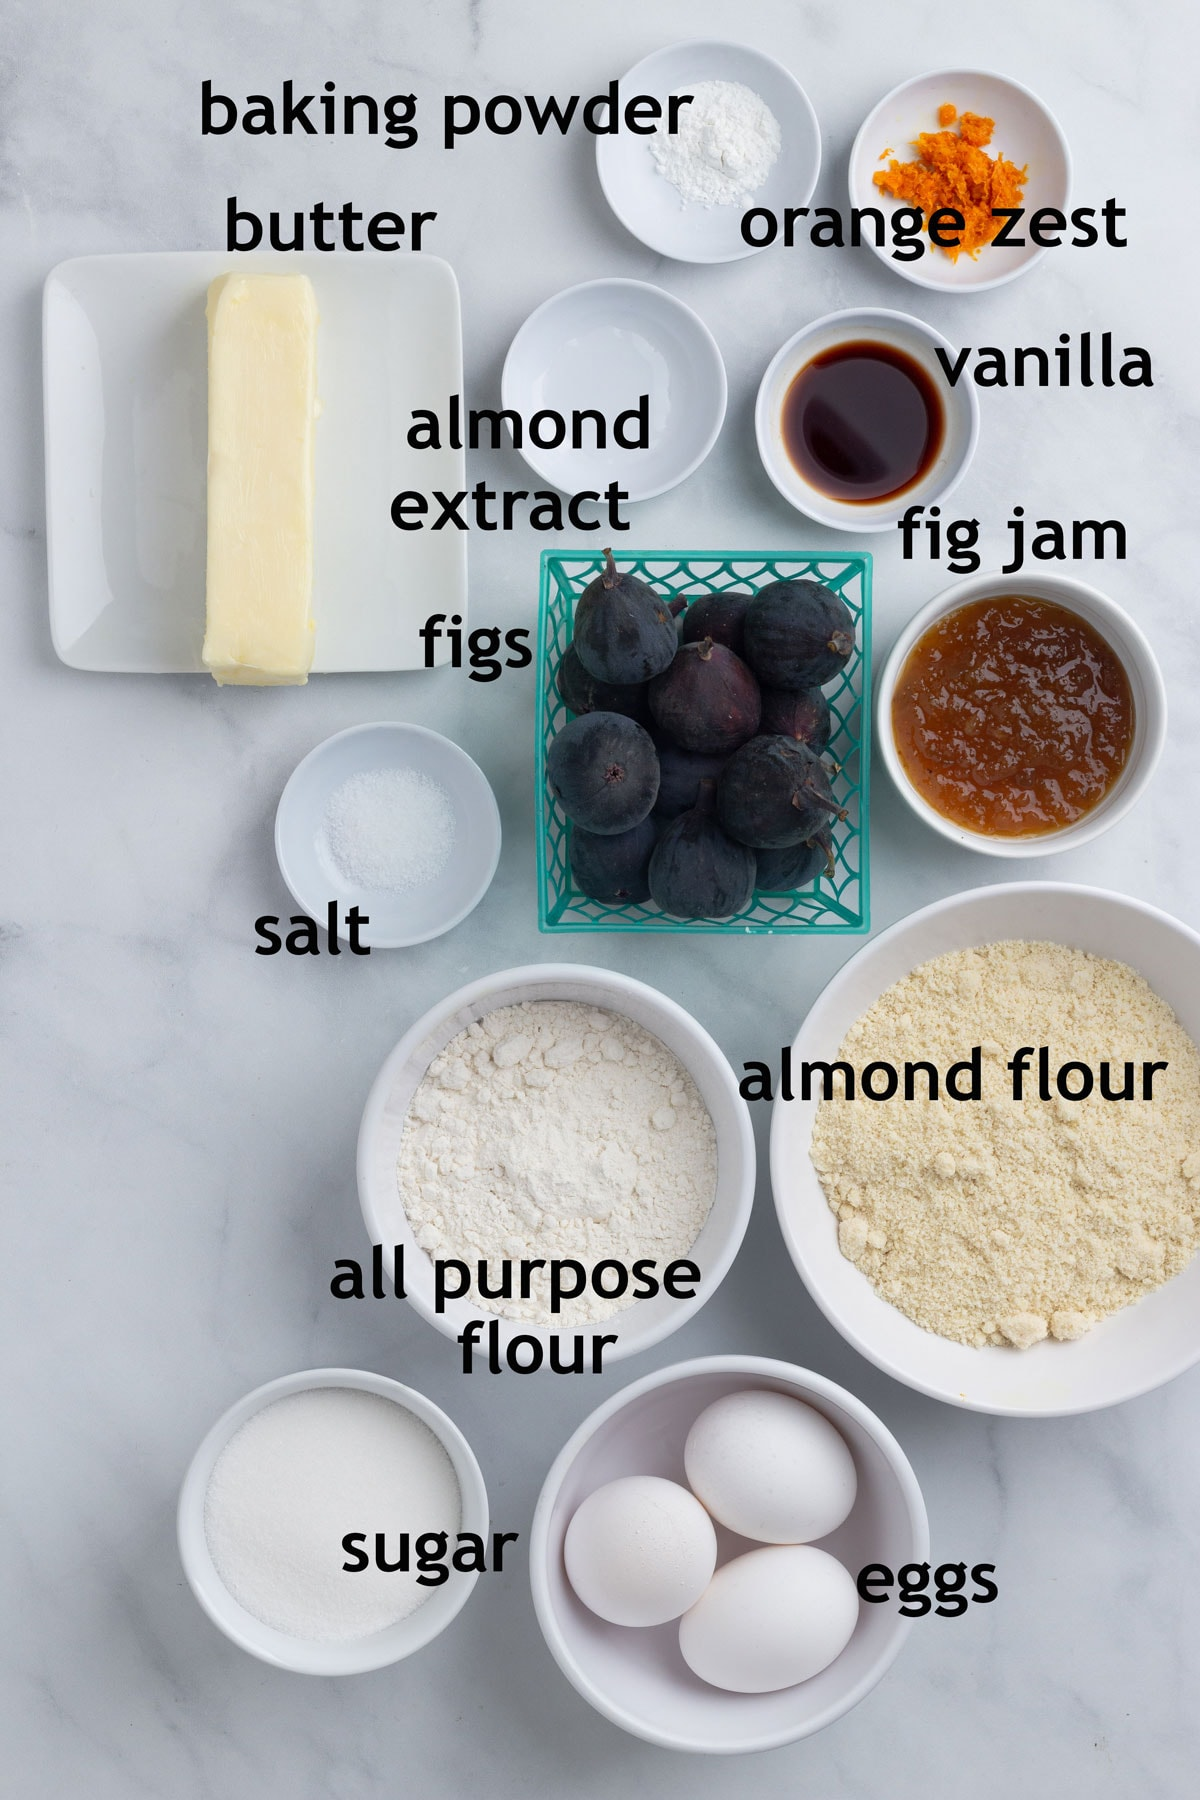 Ingredients with labels including butter, sugar, almond flour, figs, eggs and almond extract.